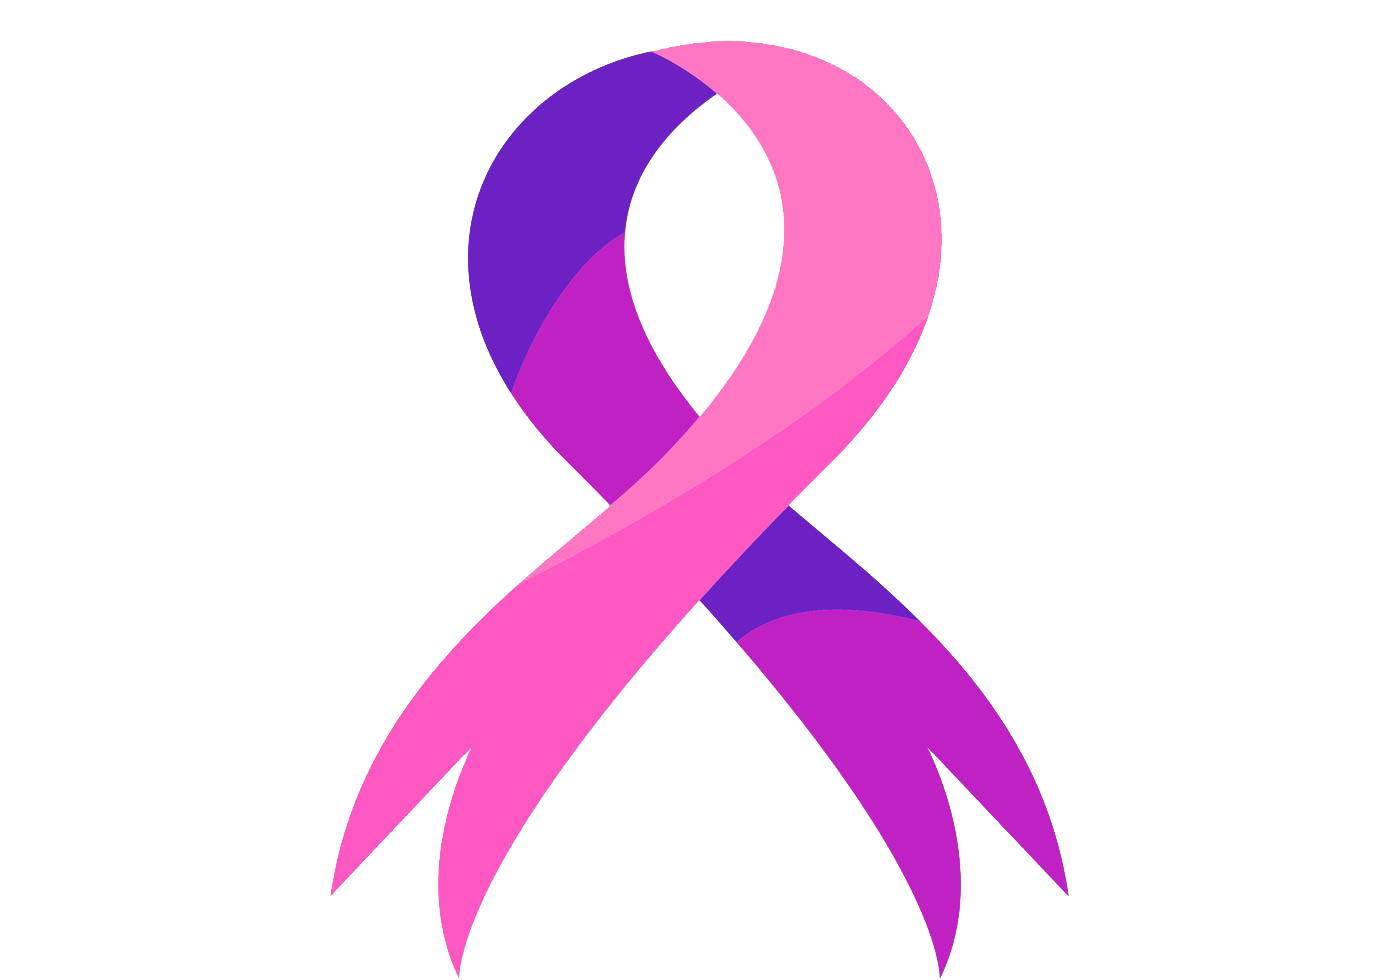 Breast Cancer Ribbon PNG Transparent Images | PNG All